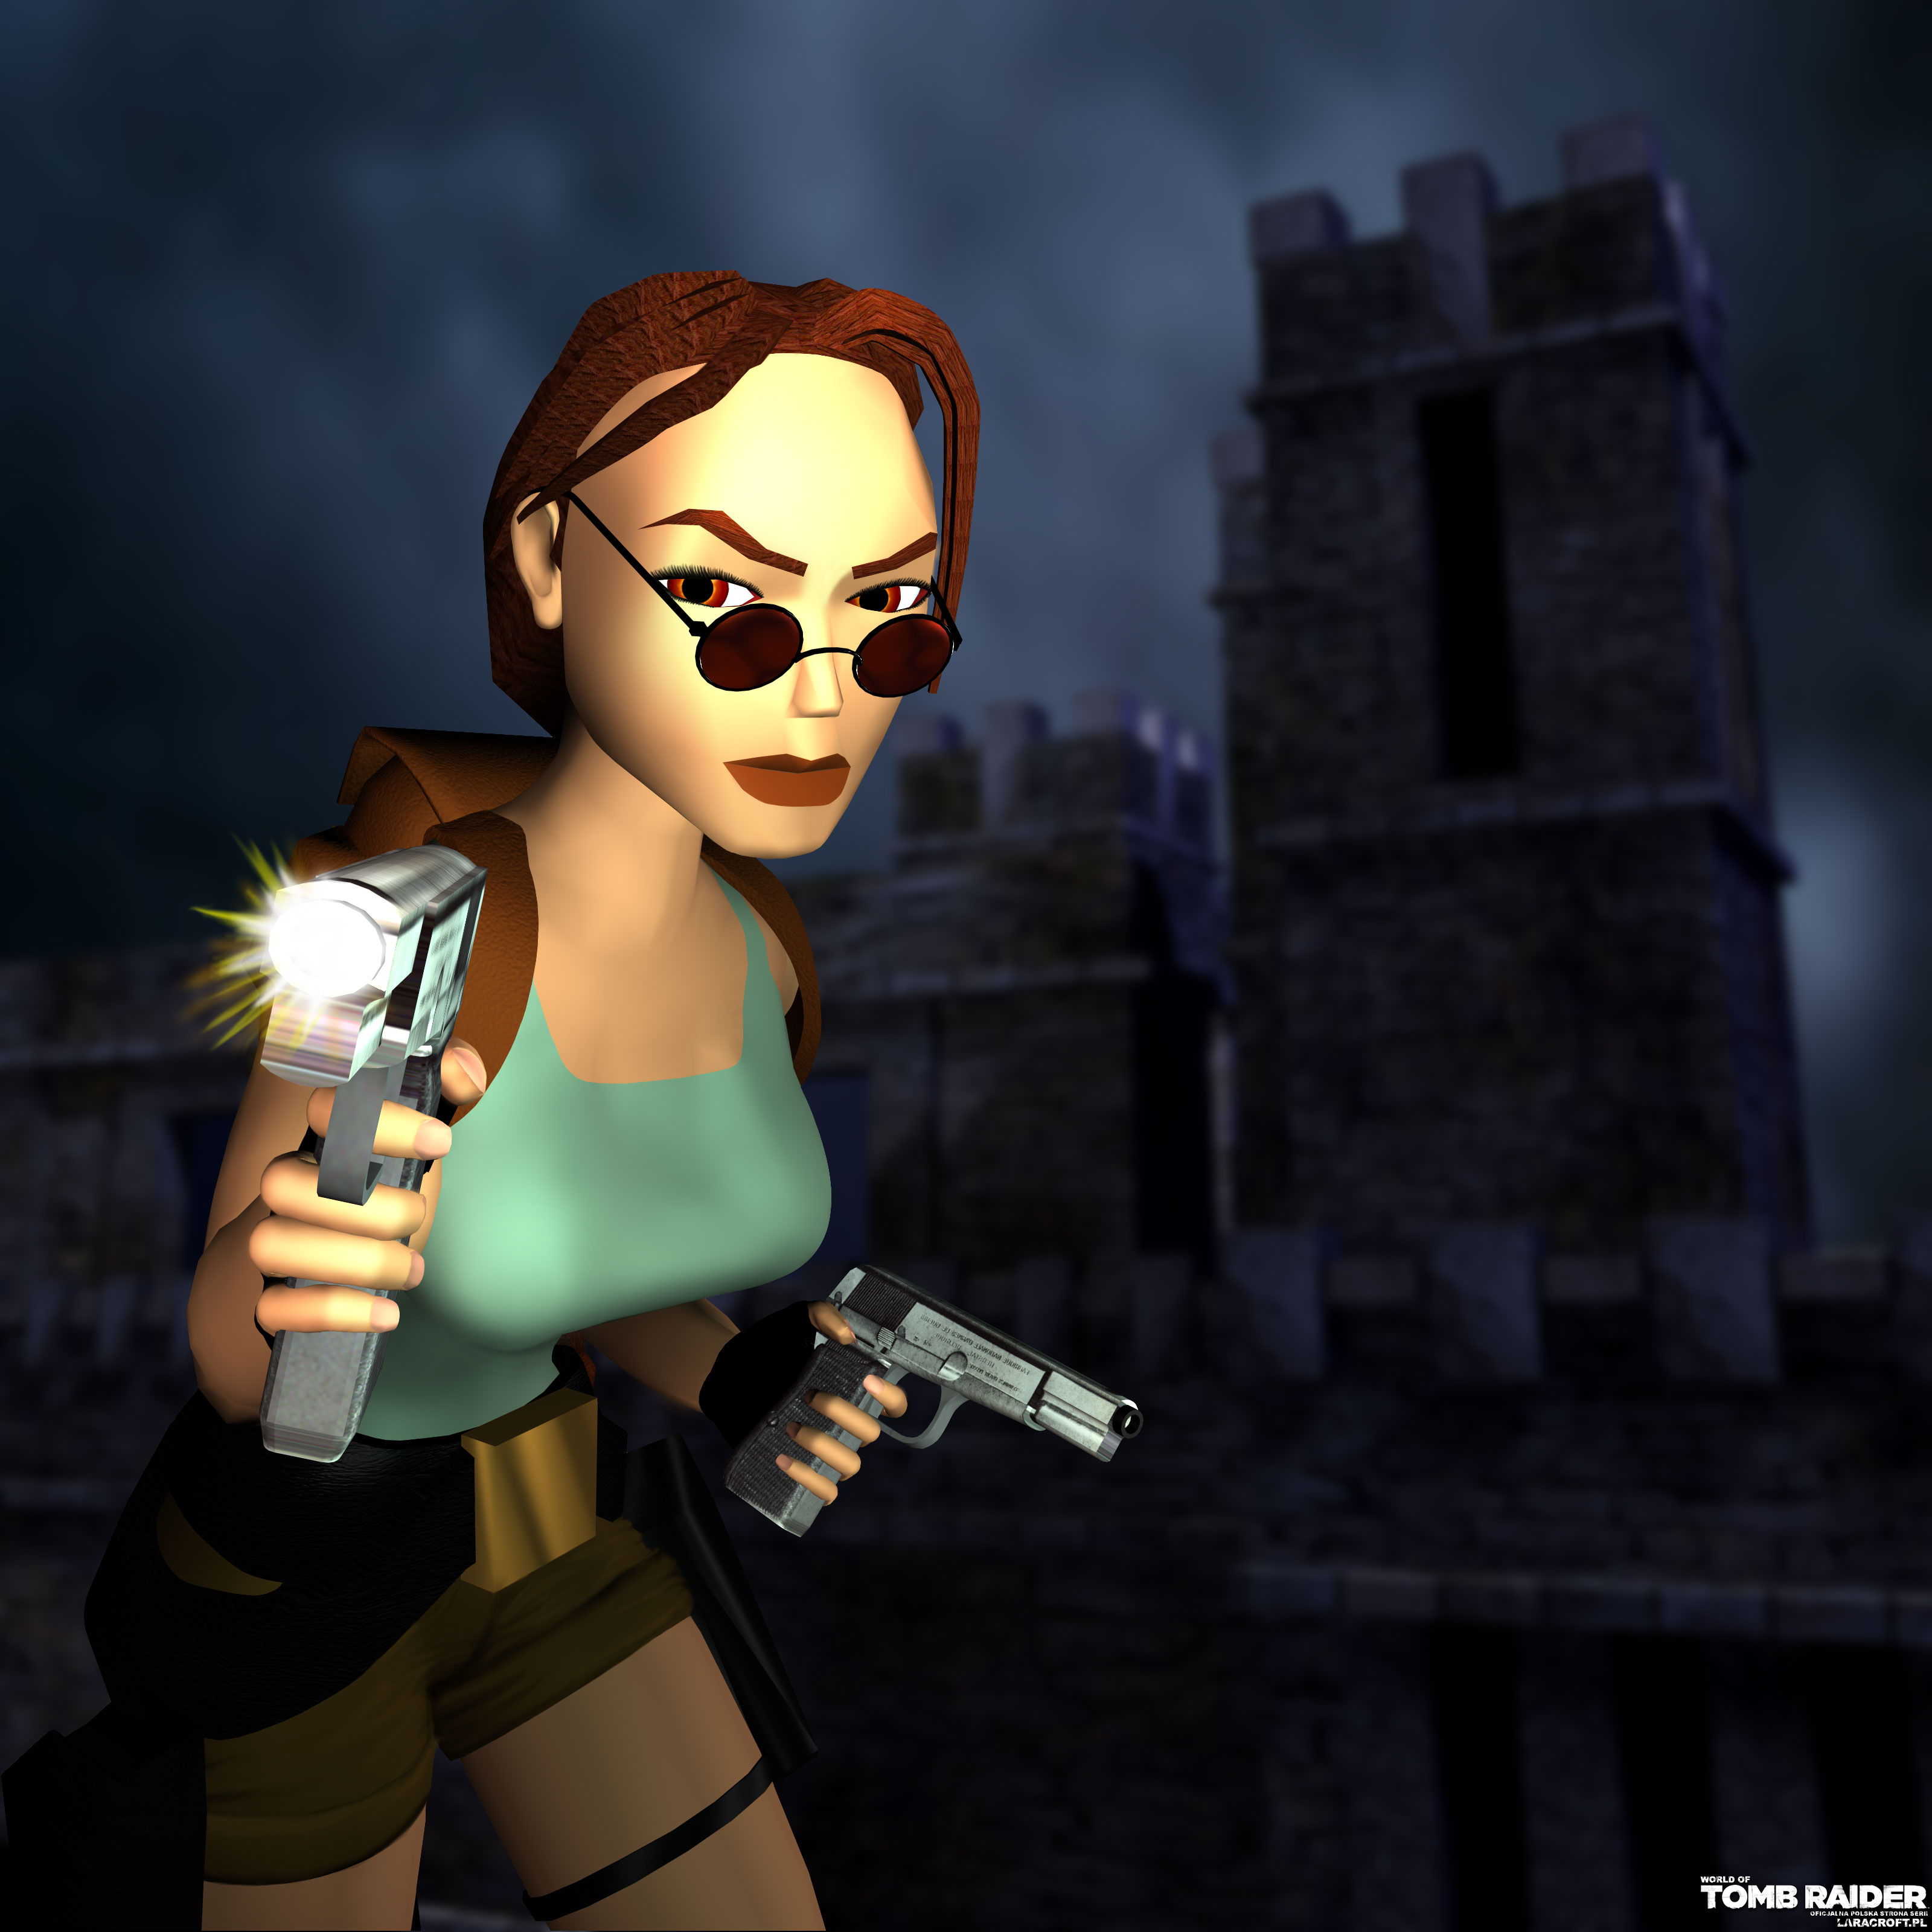 Lara croft old game fucks cutie